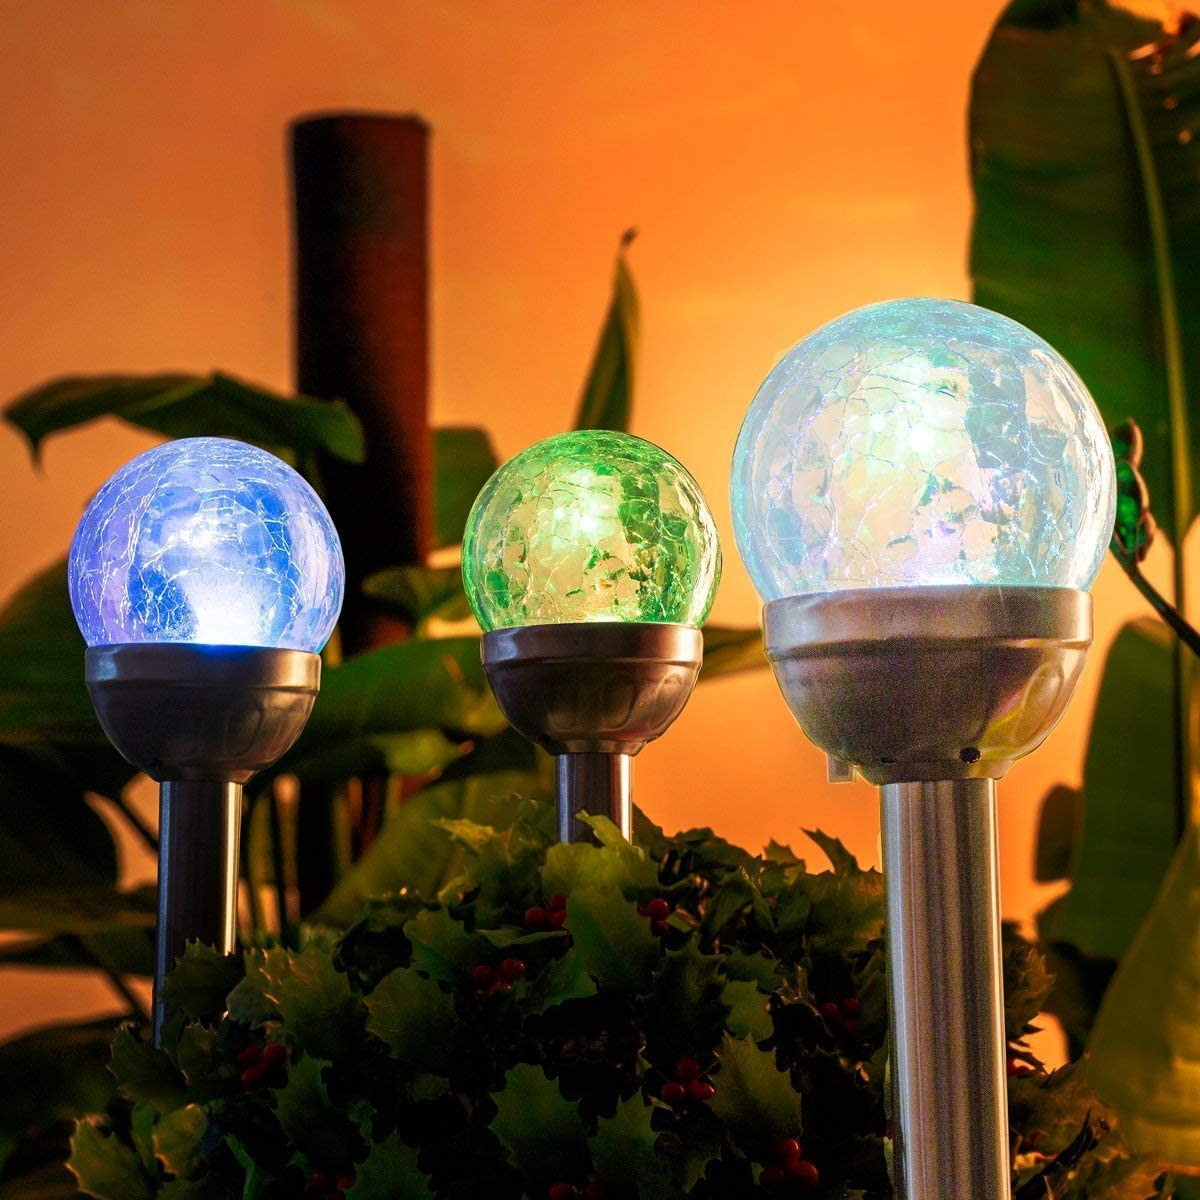 GIGALUMI Solar Lights Outdoor, Cracked Glass Ball Dual LED Garden Lights, Landscape Pathway Lights for Path, Patio, Yard-Color Changing and White-3 Pack Renewed